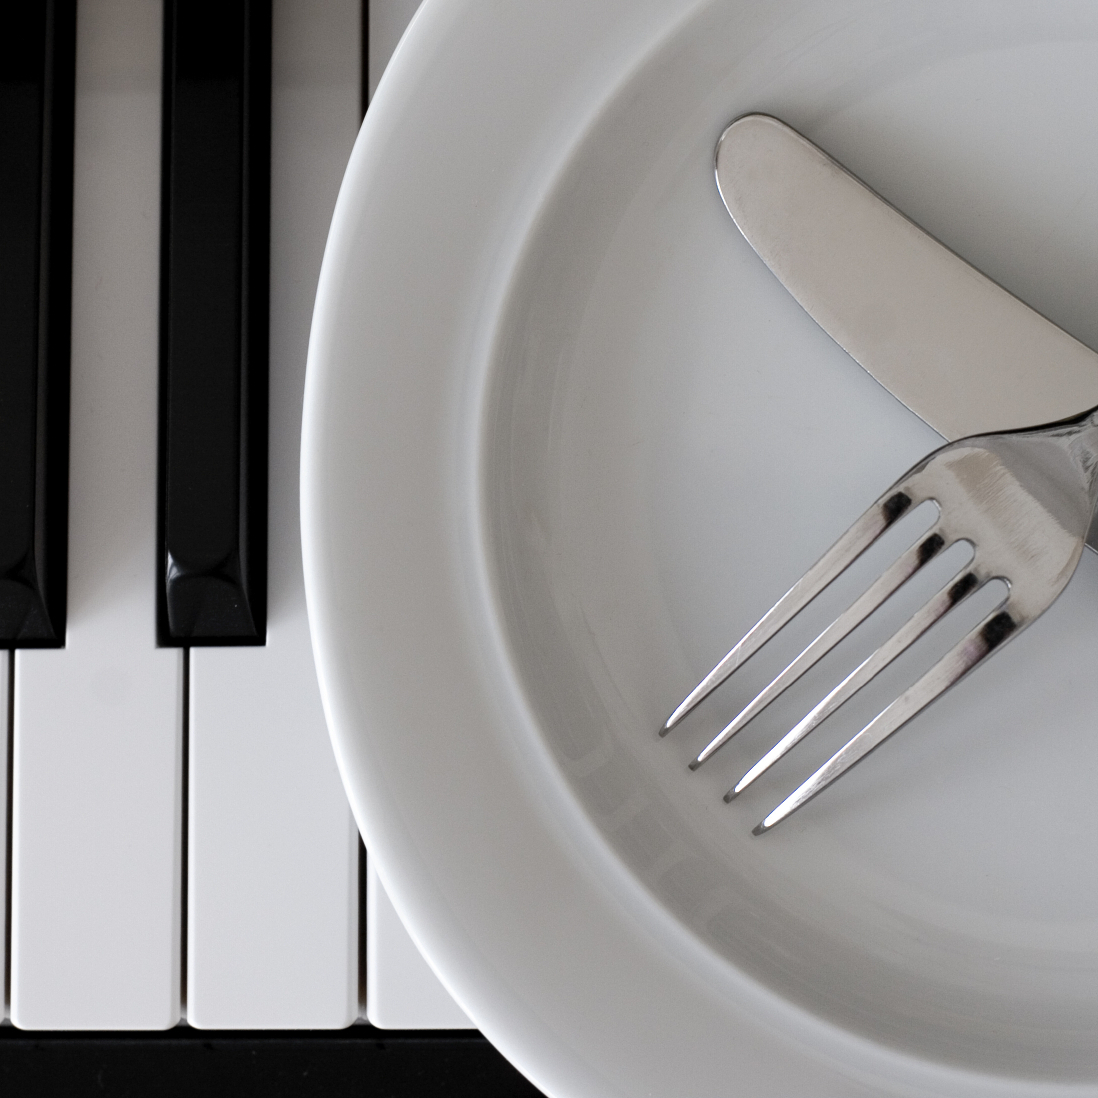 Image for Want To Enhance The Flavor Of Your Food? Put On The Right Music